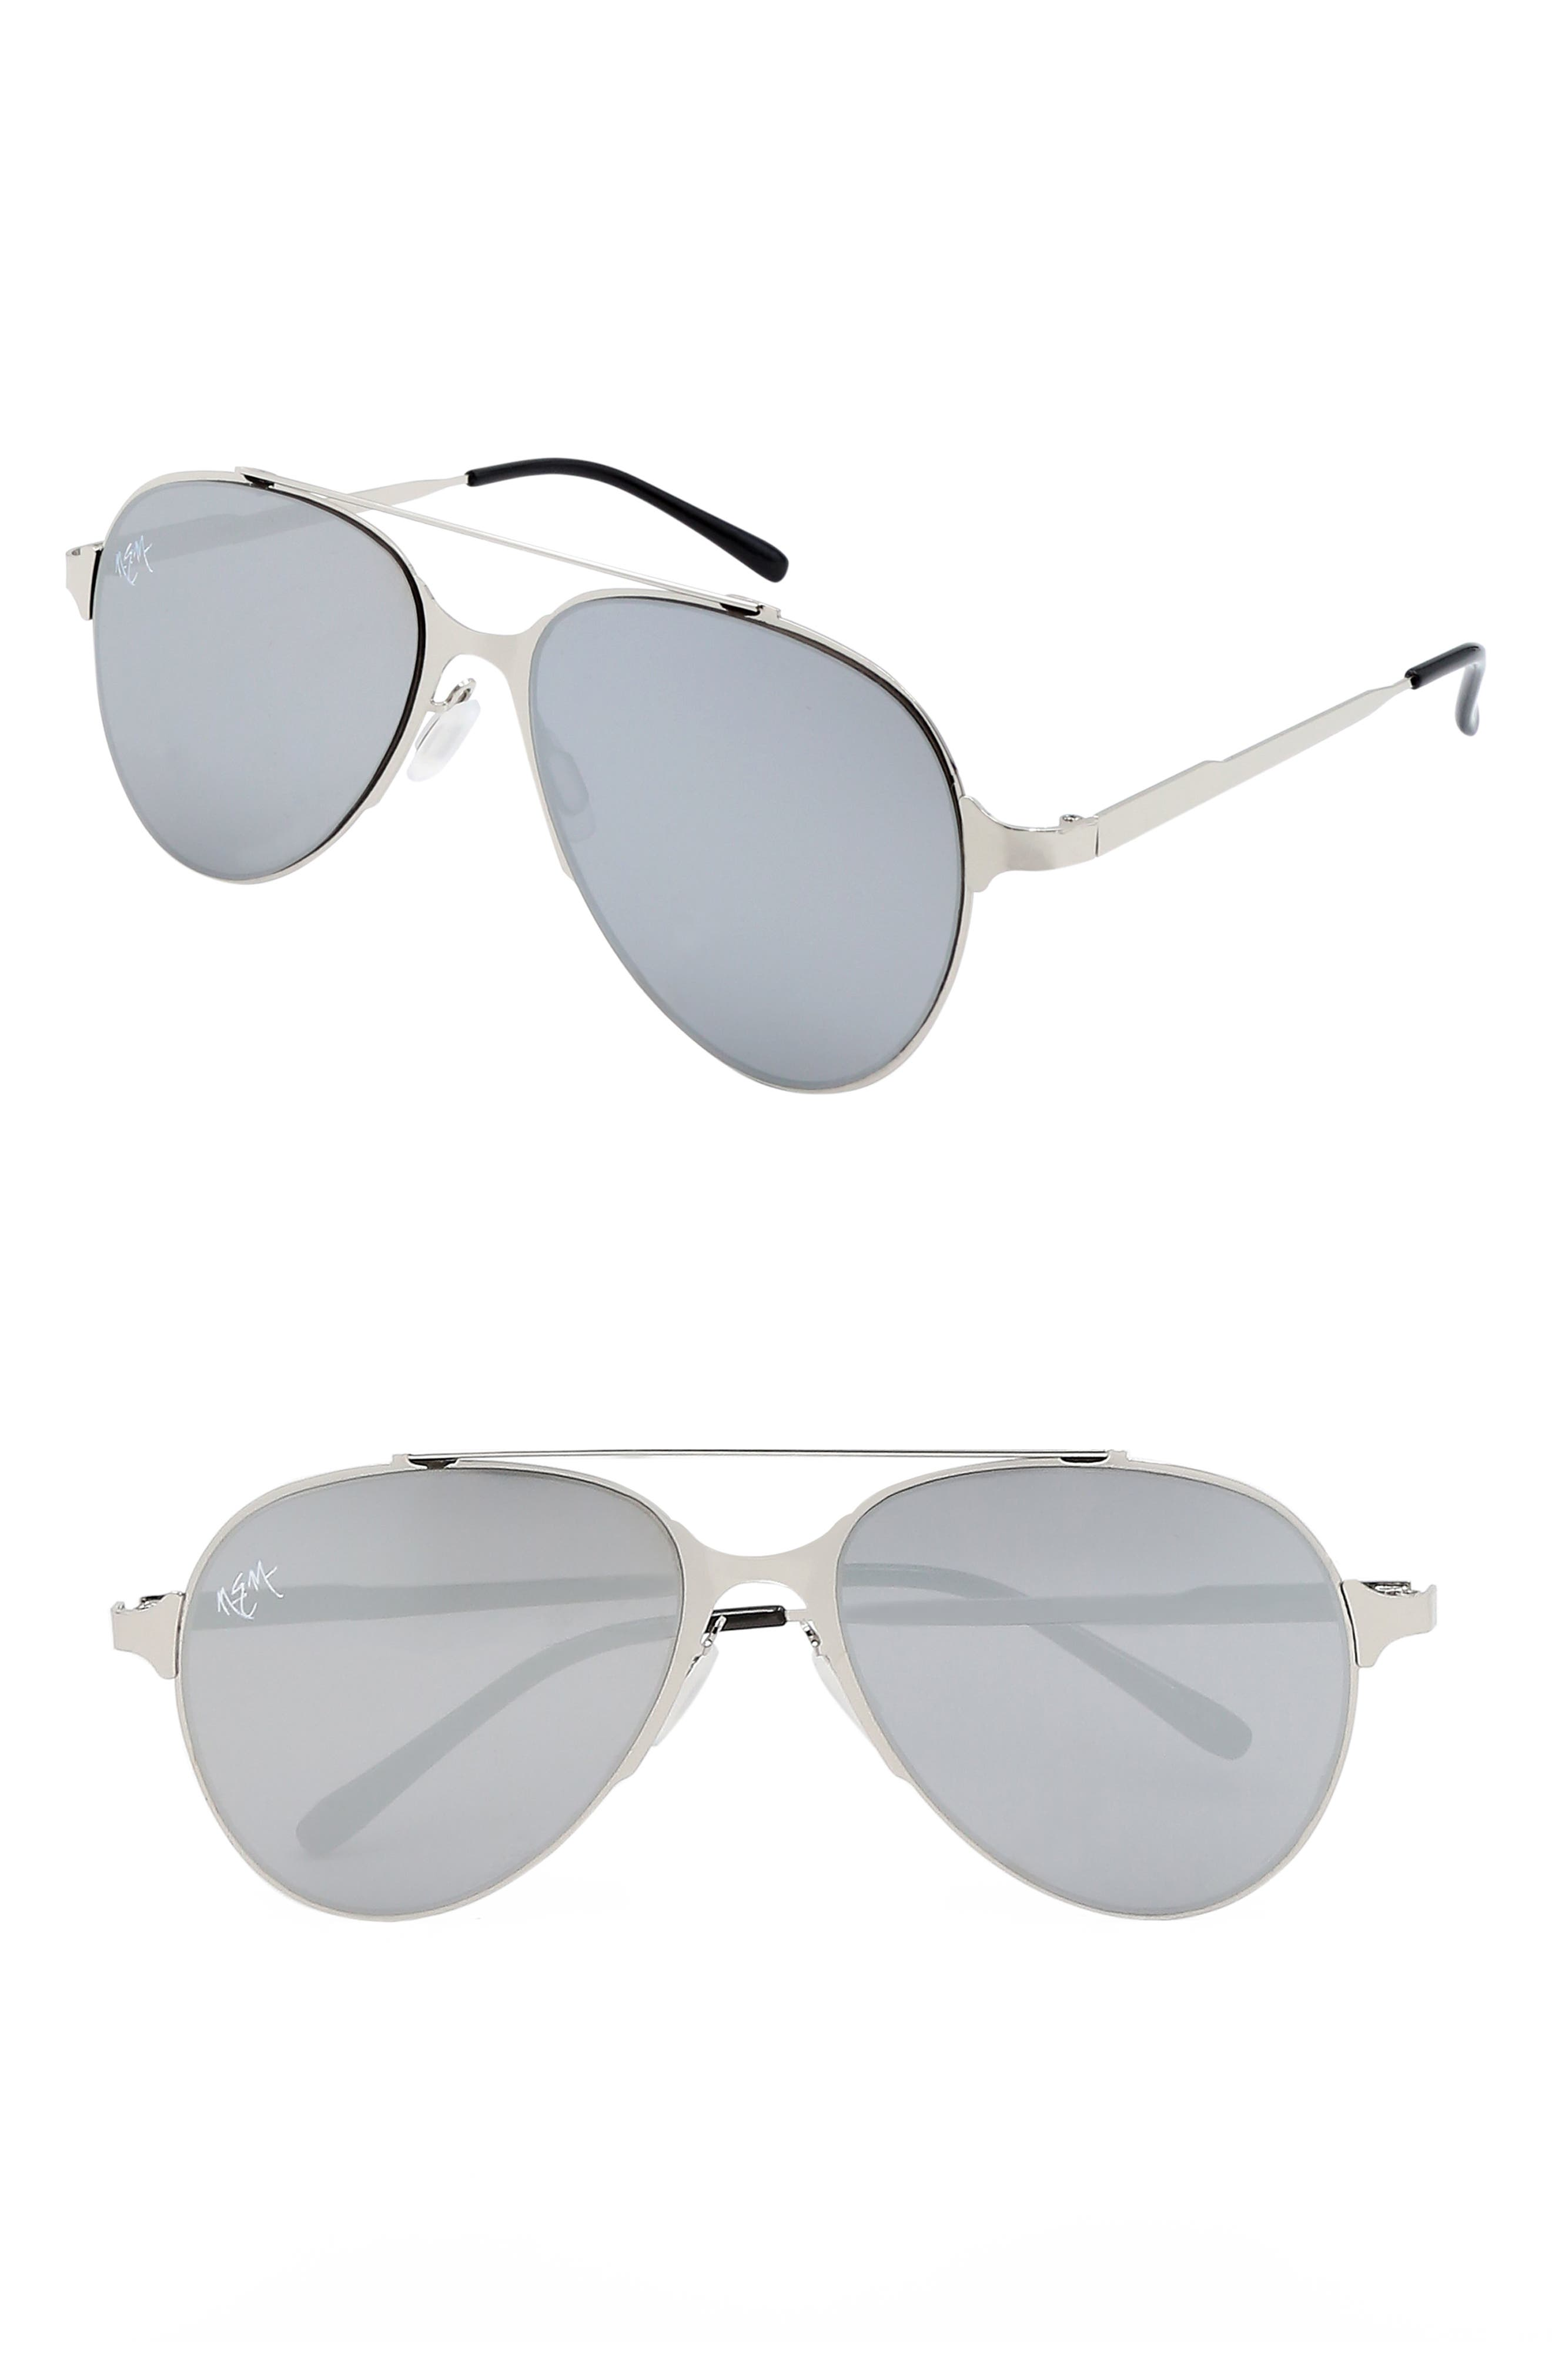 55mm Mirrored Aviator Sunglasses,                             Main thumbnail 1, color,                             SILVER W MIRROR LENS